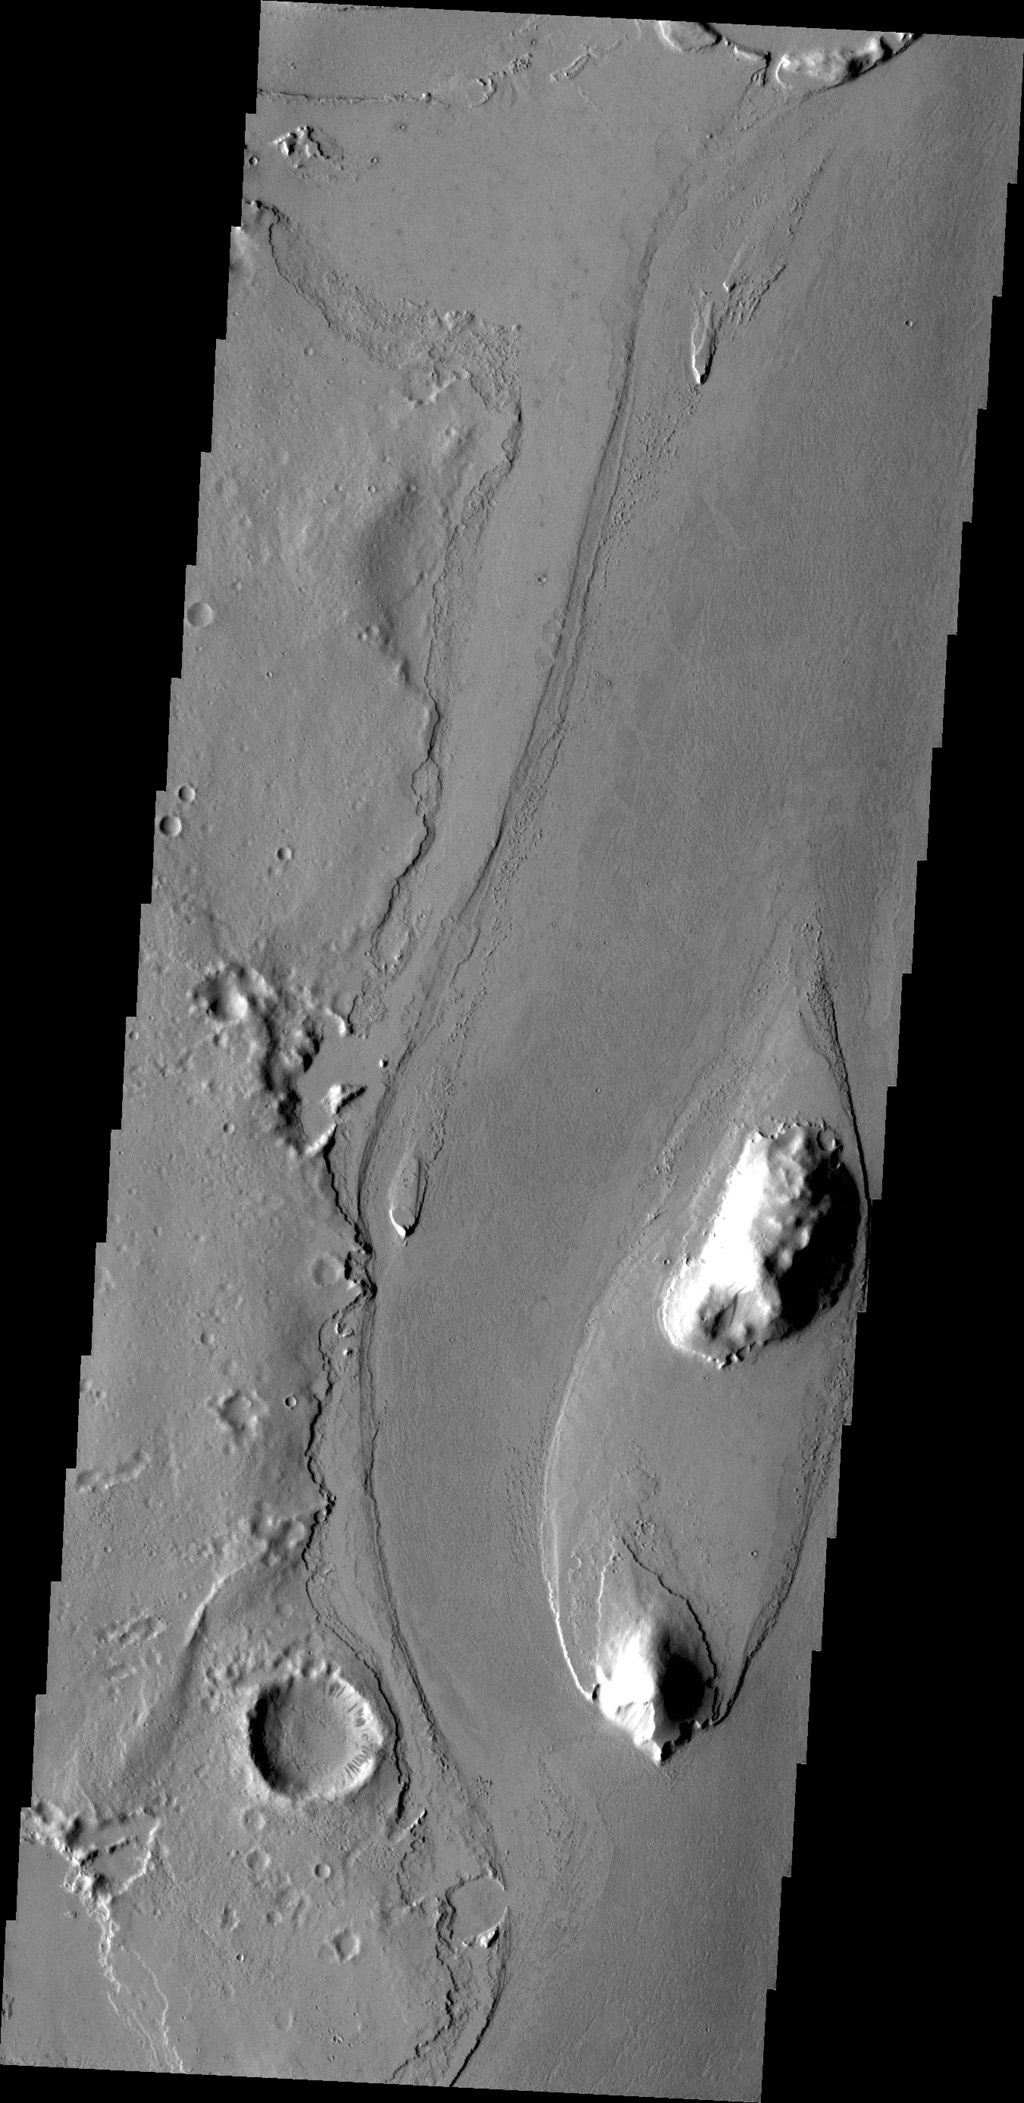 The streamlined island in this image captured by NASA's 2001 Mars Odyssey spacecraft is located in the channel of Marte Vallis.